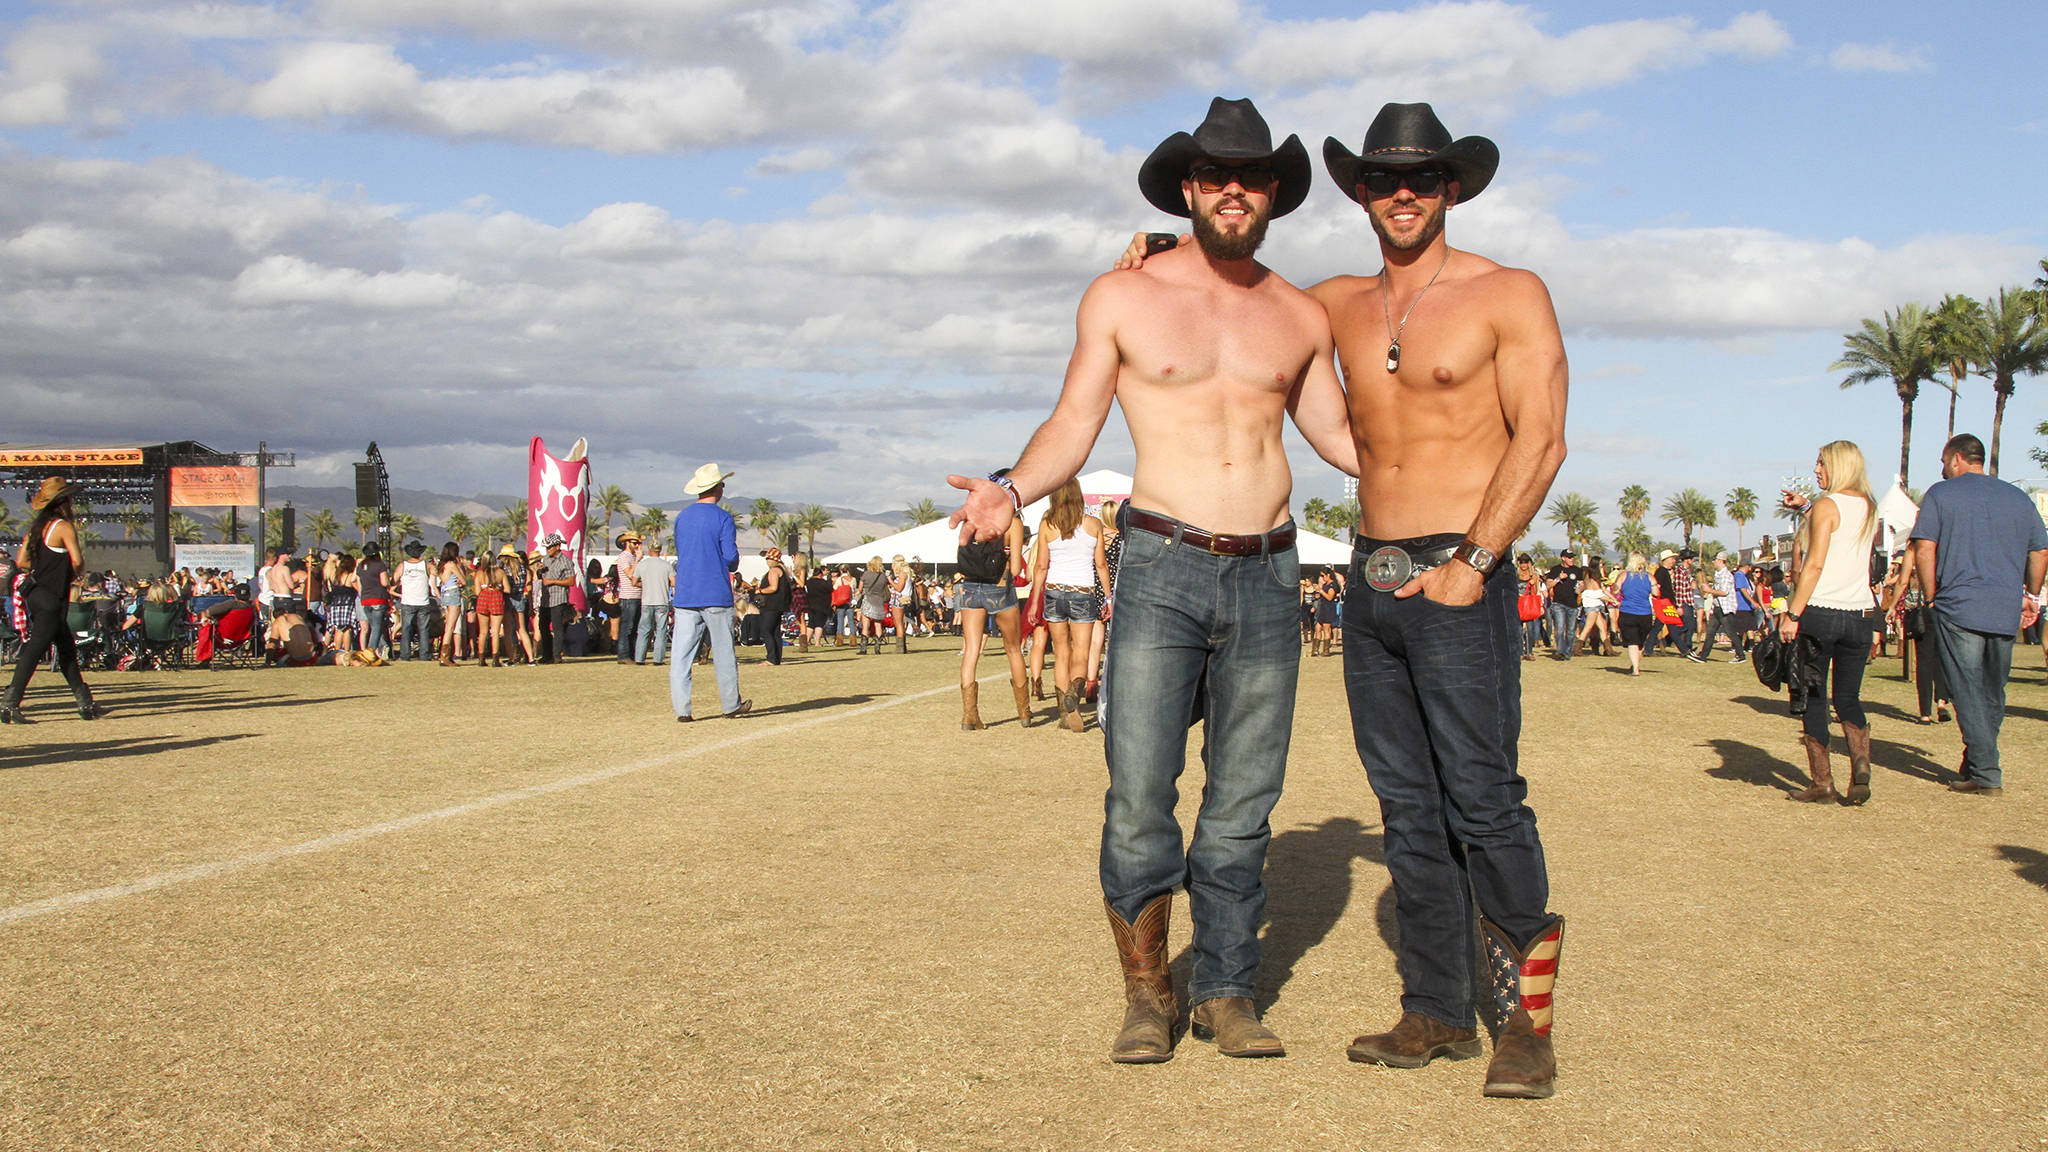 The hottest cowboys (and girls) of Stagecoach 2015